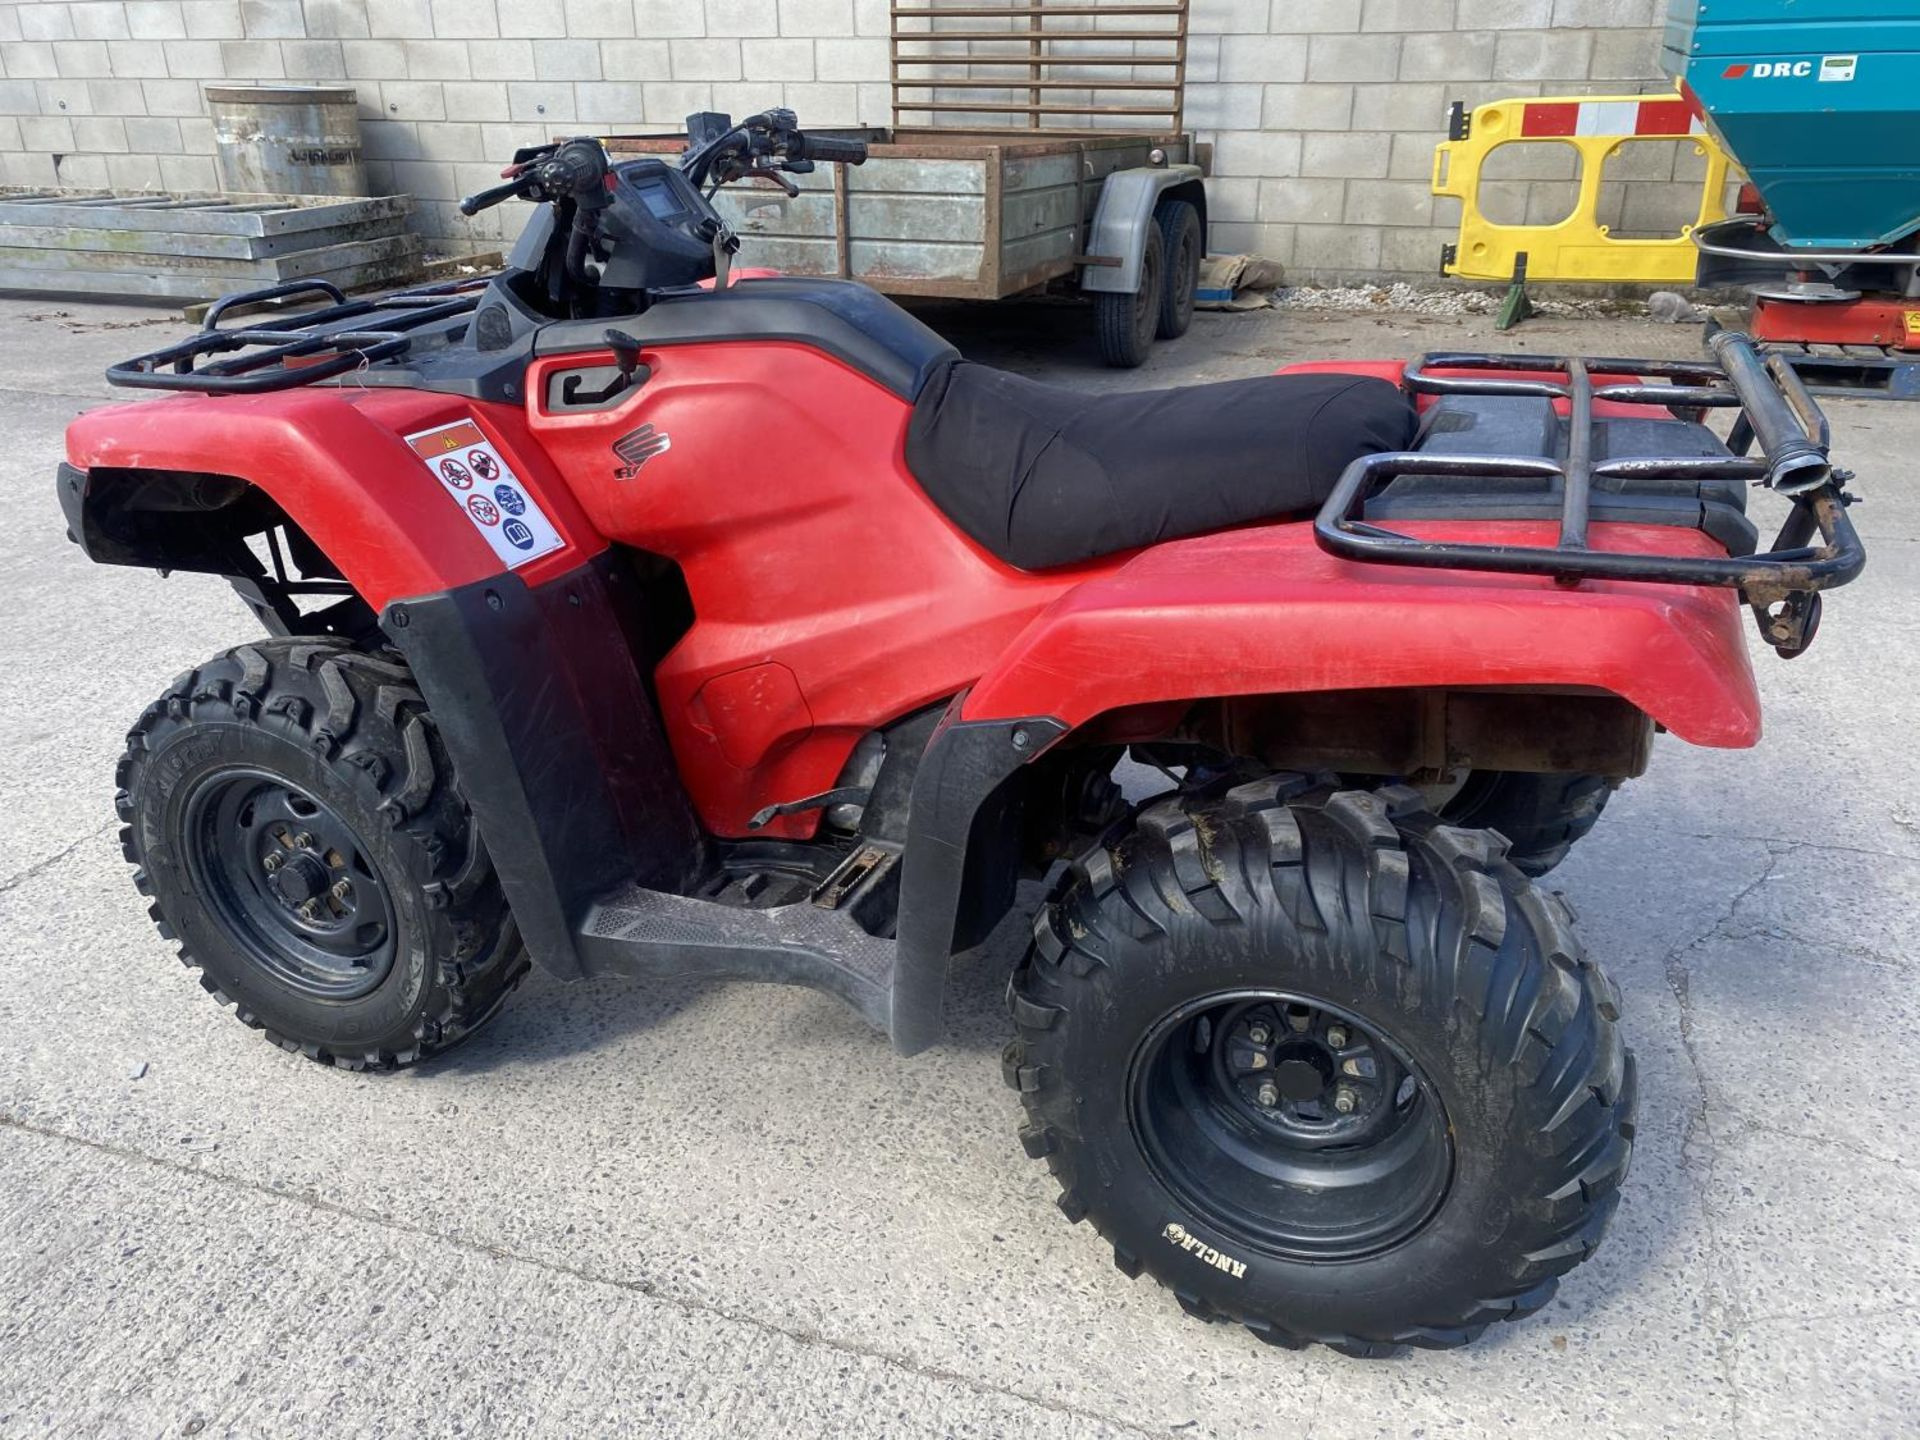 A 2017 HONDA TRX 420 QUAD BIKE - SEE VIDEO OF VEHICLE STARTING AND RUNNING AT https://www.youtube.